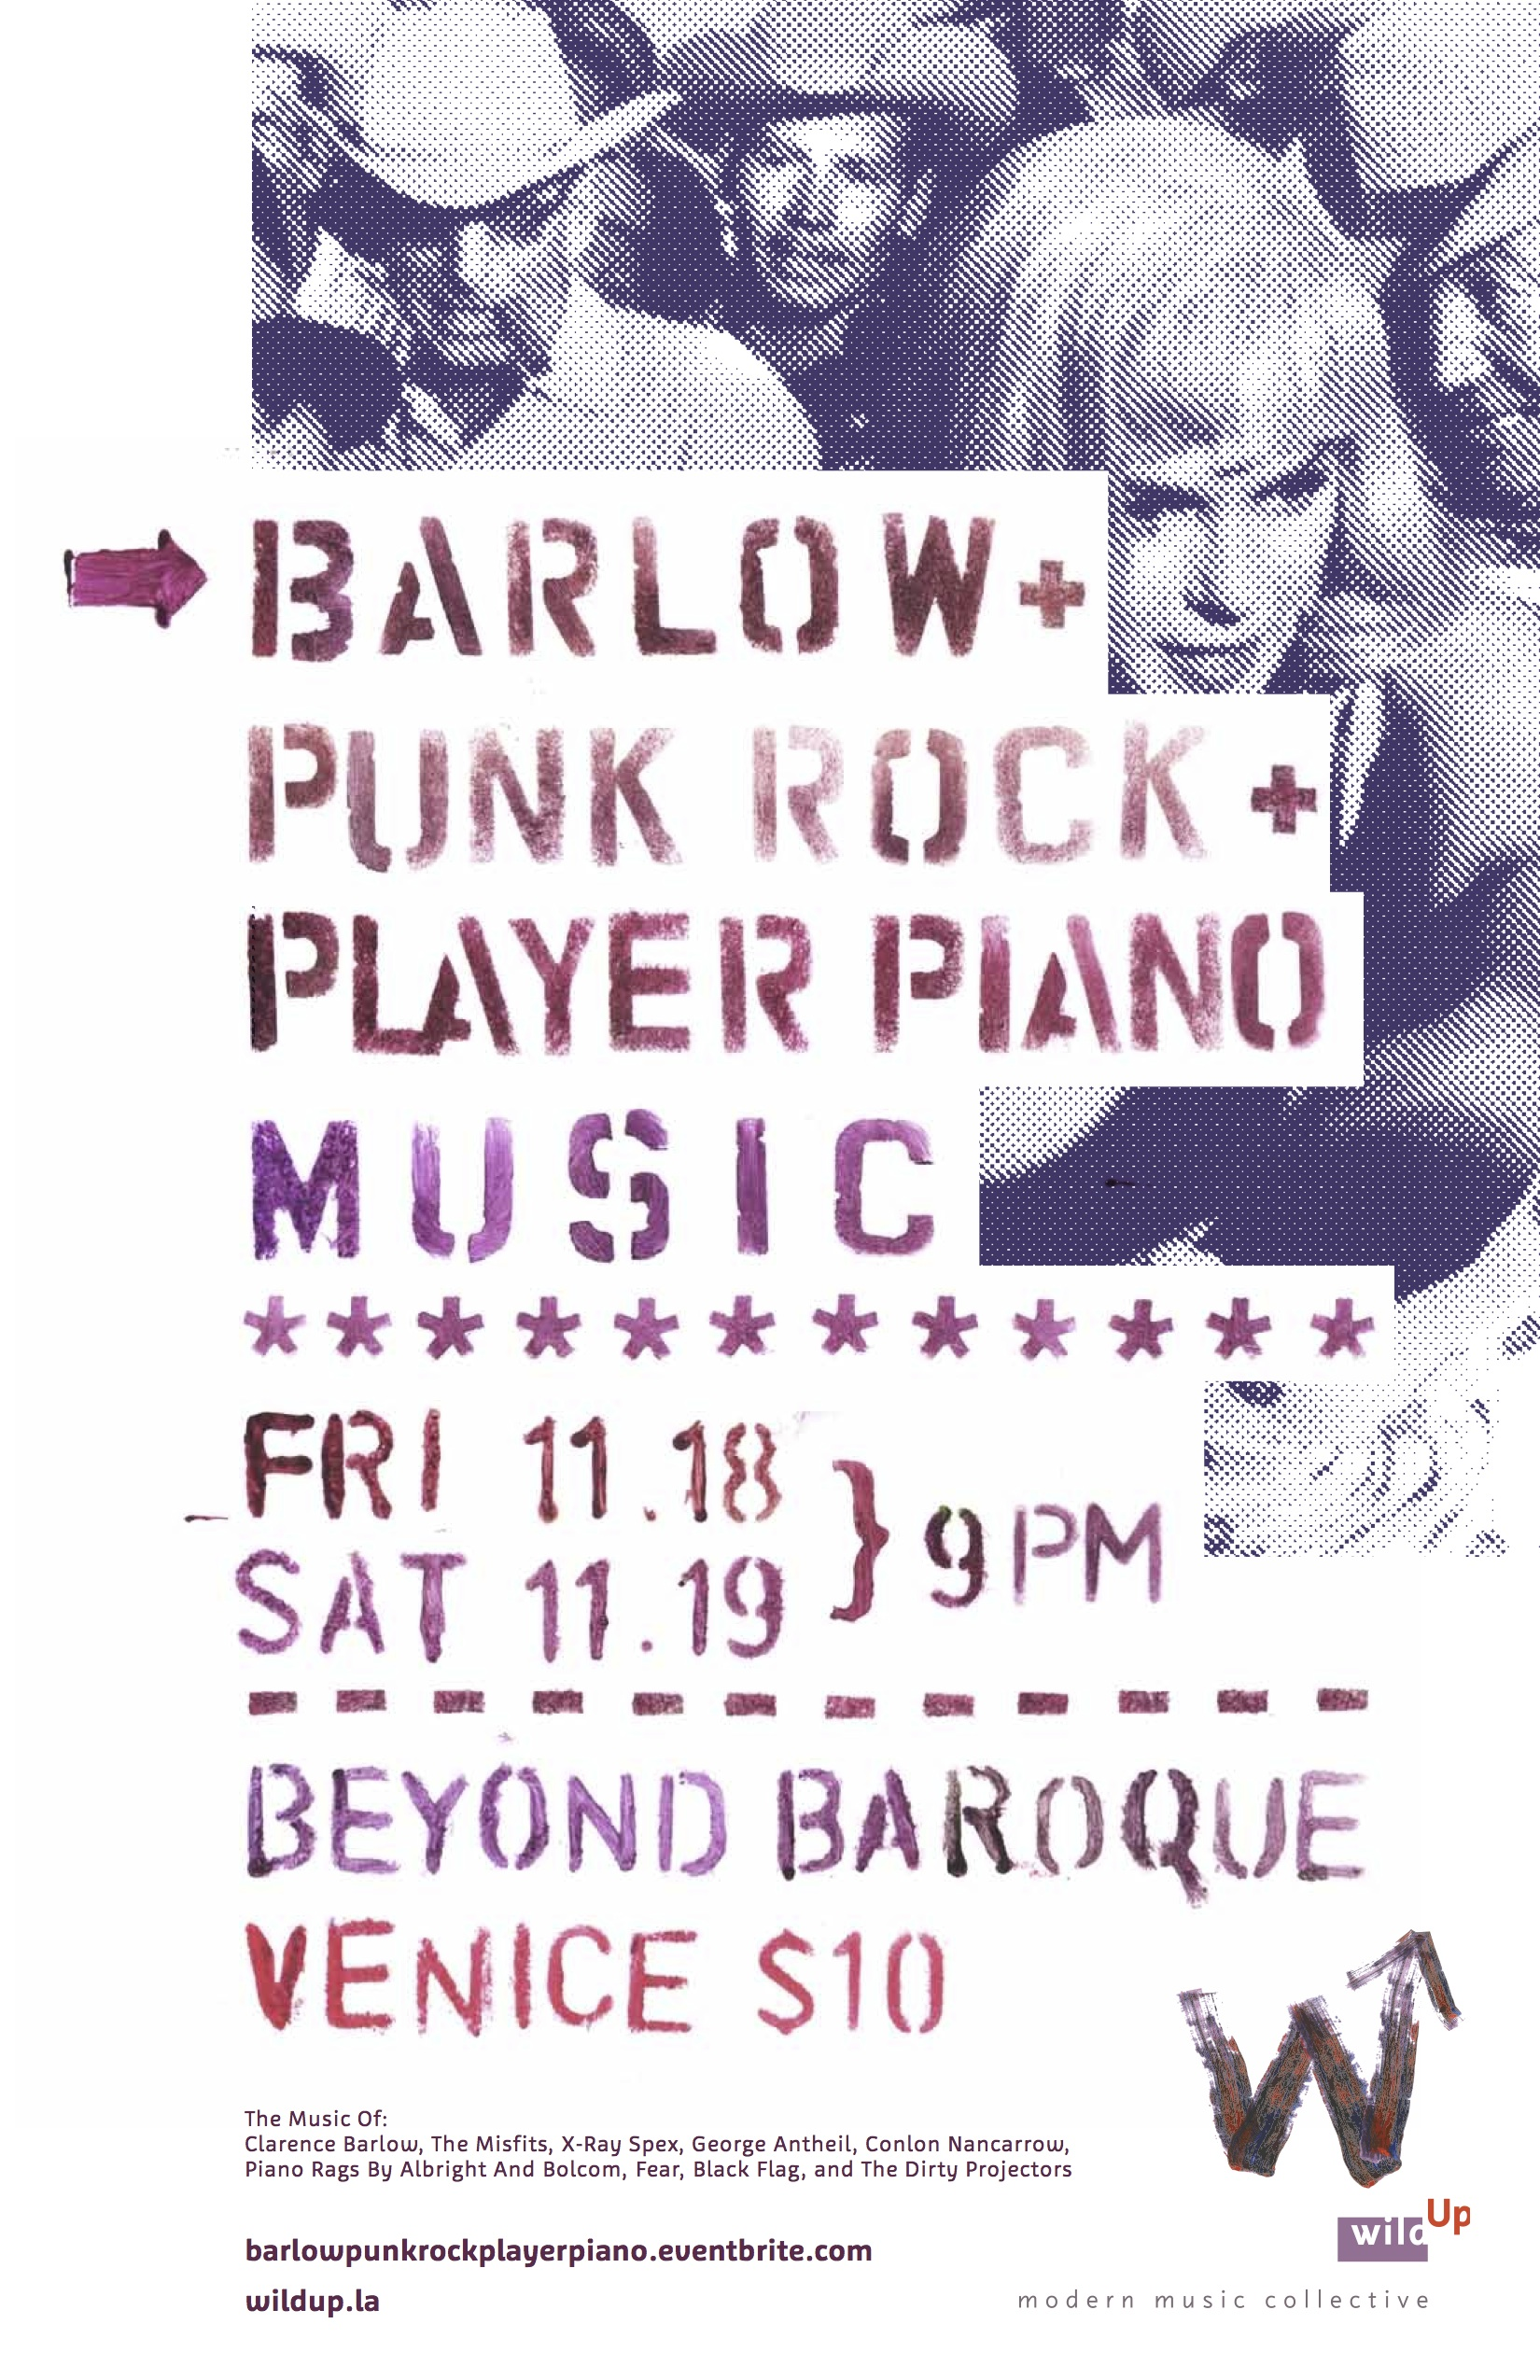 wild Up | Barlow, punk rock and player piano music